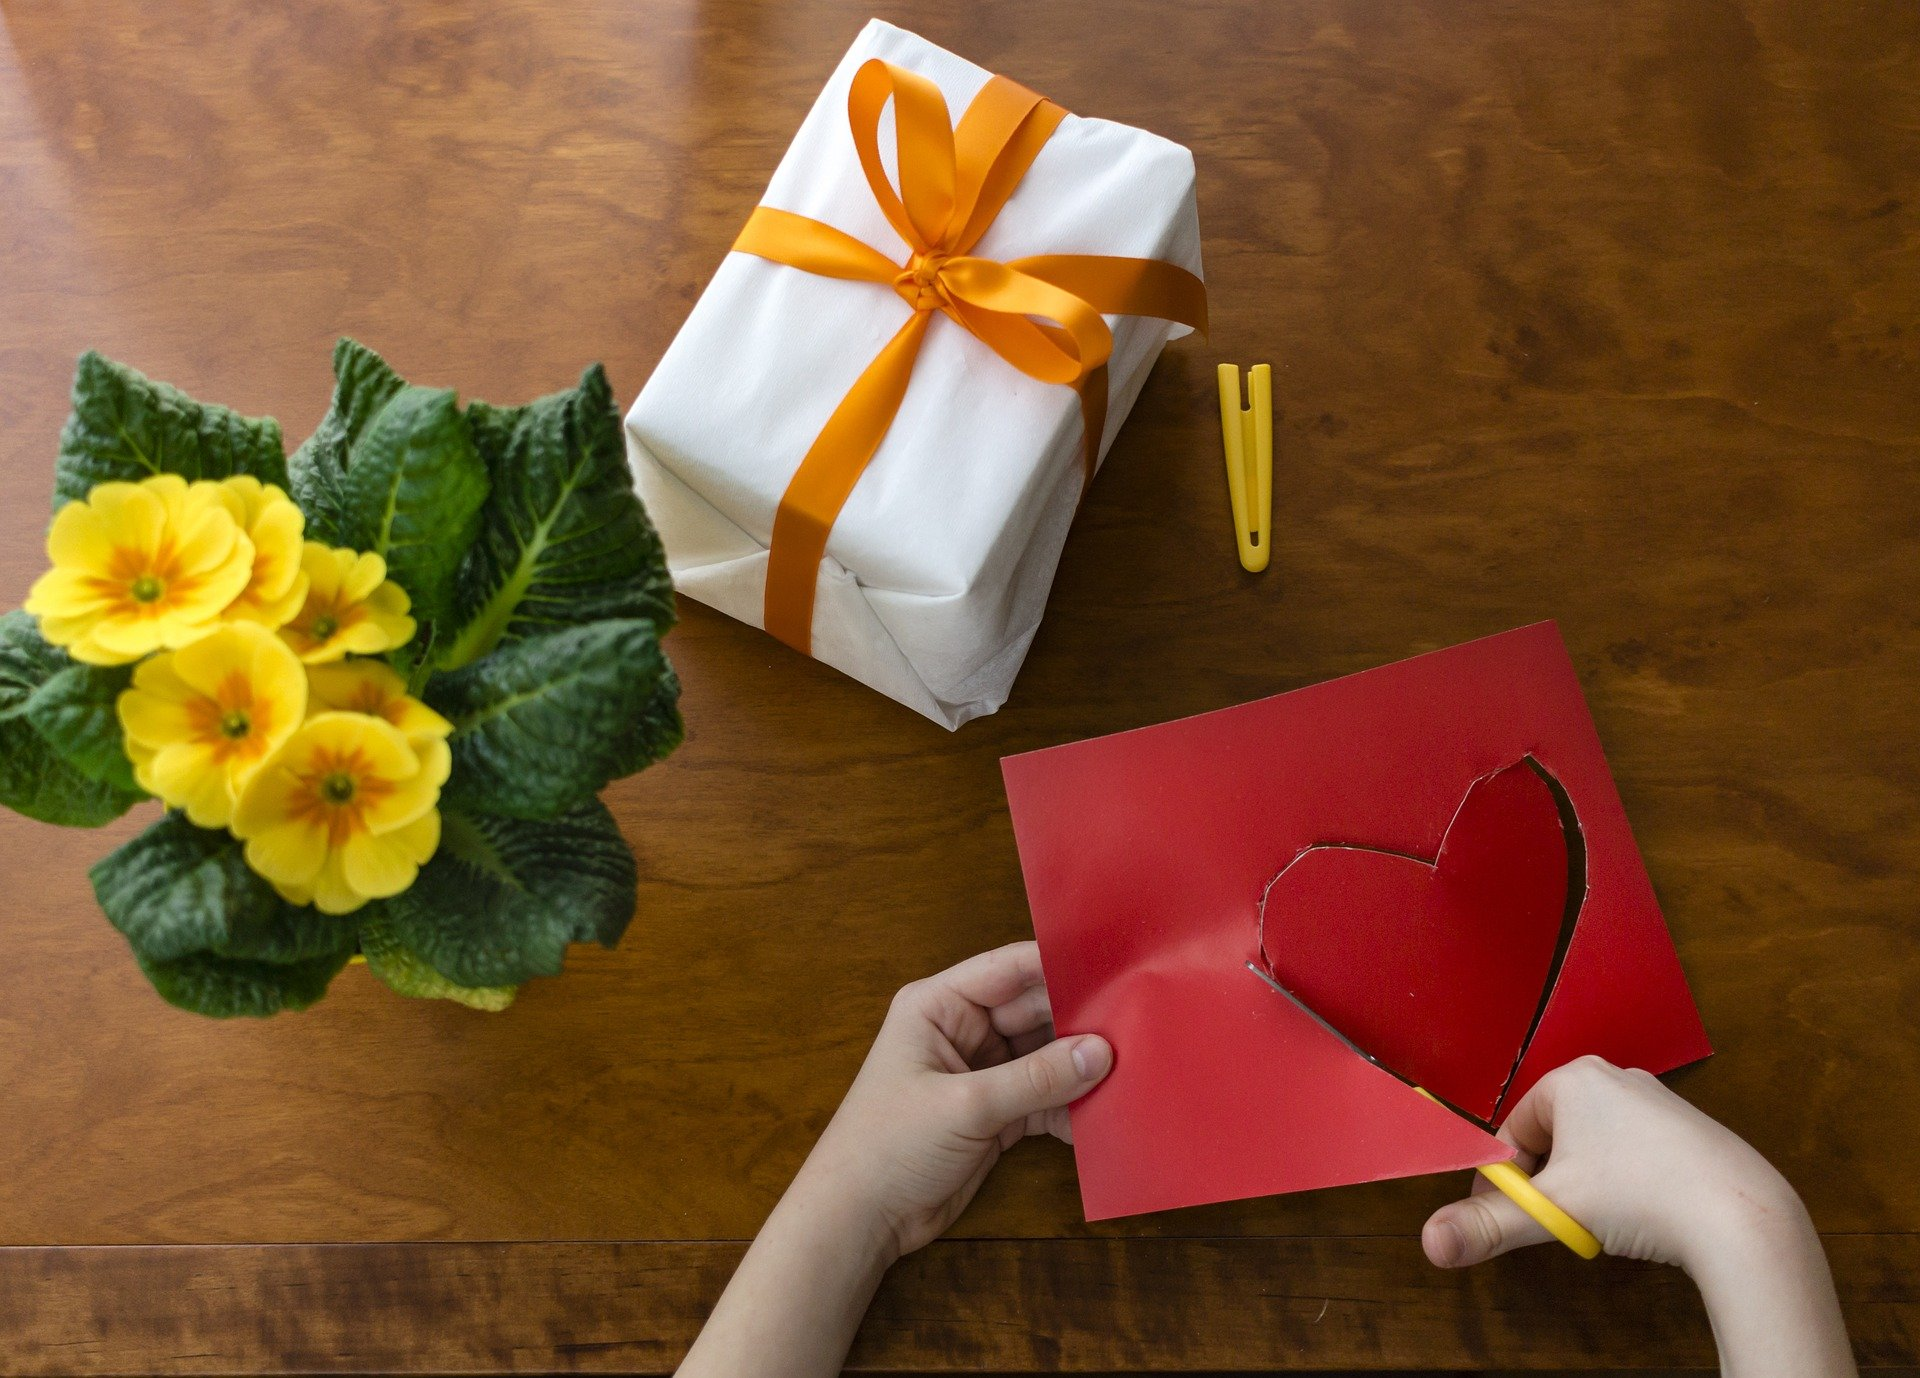 Pictured - A kid cutting out a heart shape next to wrapped gift and flowers | Source: Pixabay